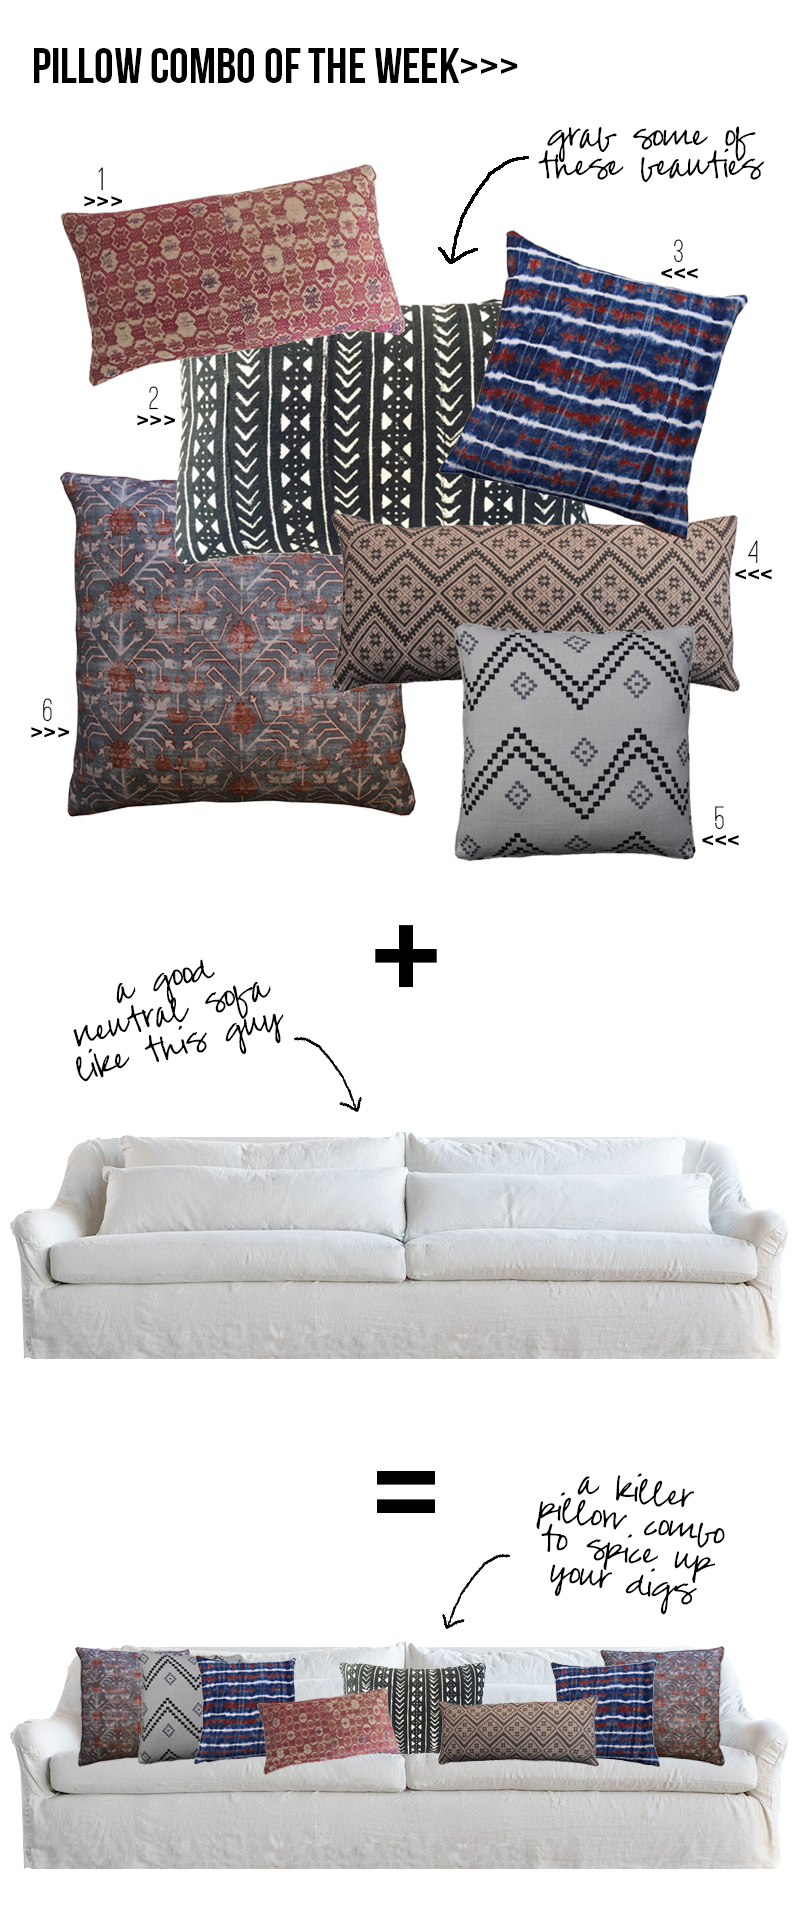 Amber Interiors - Pillow Combo of the Week 3.6